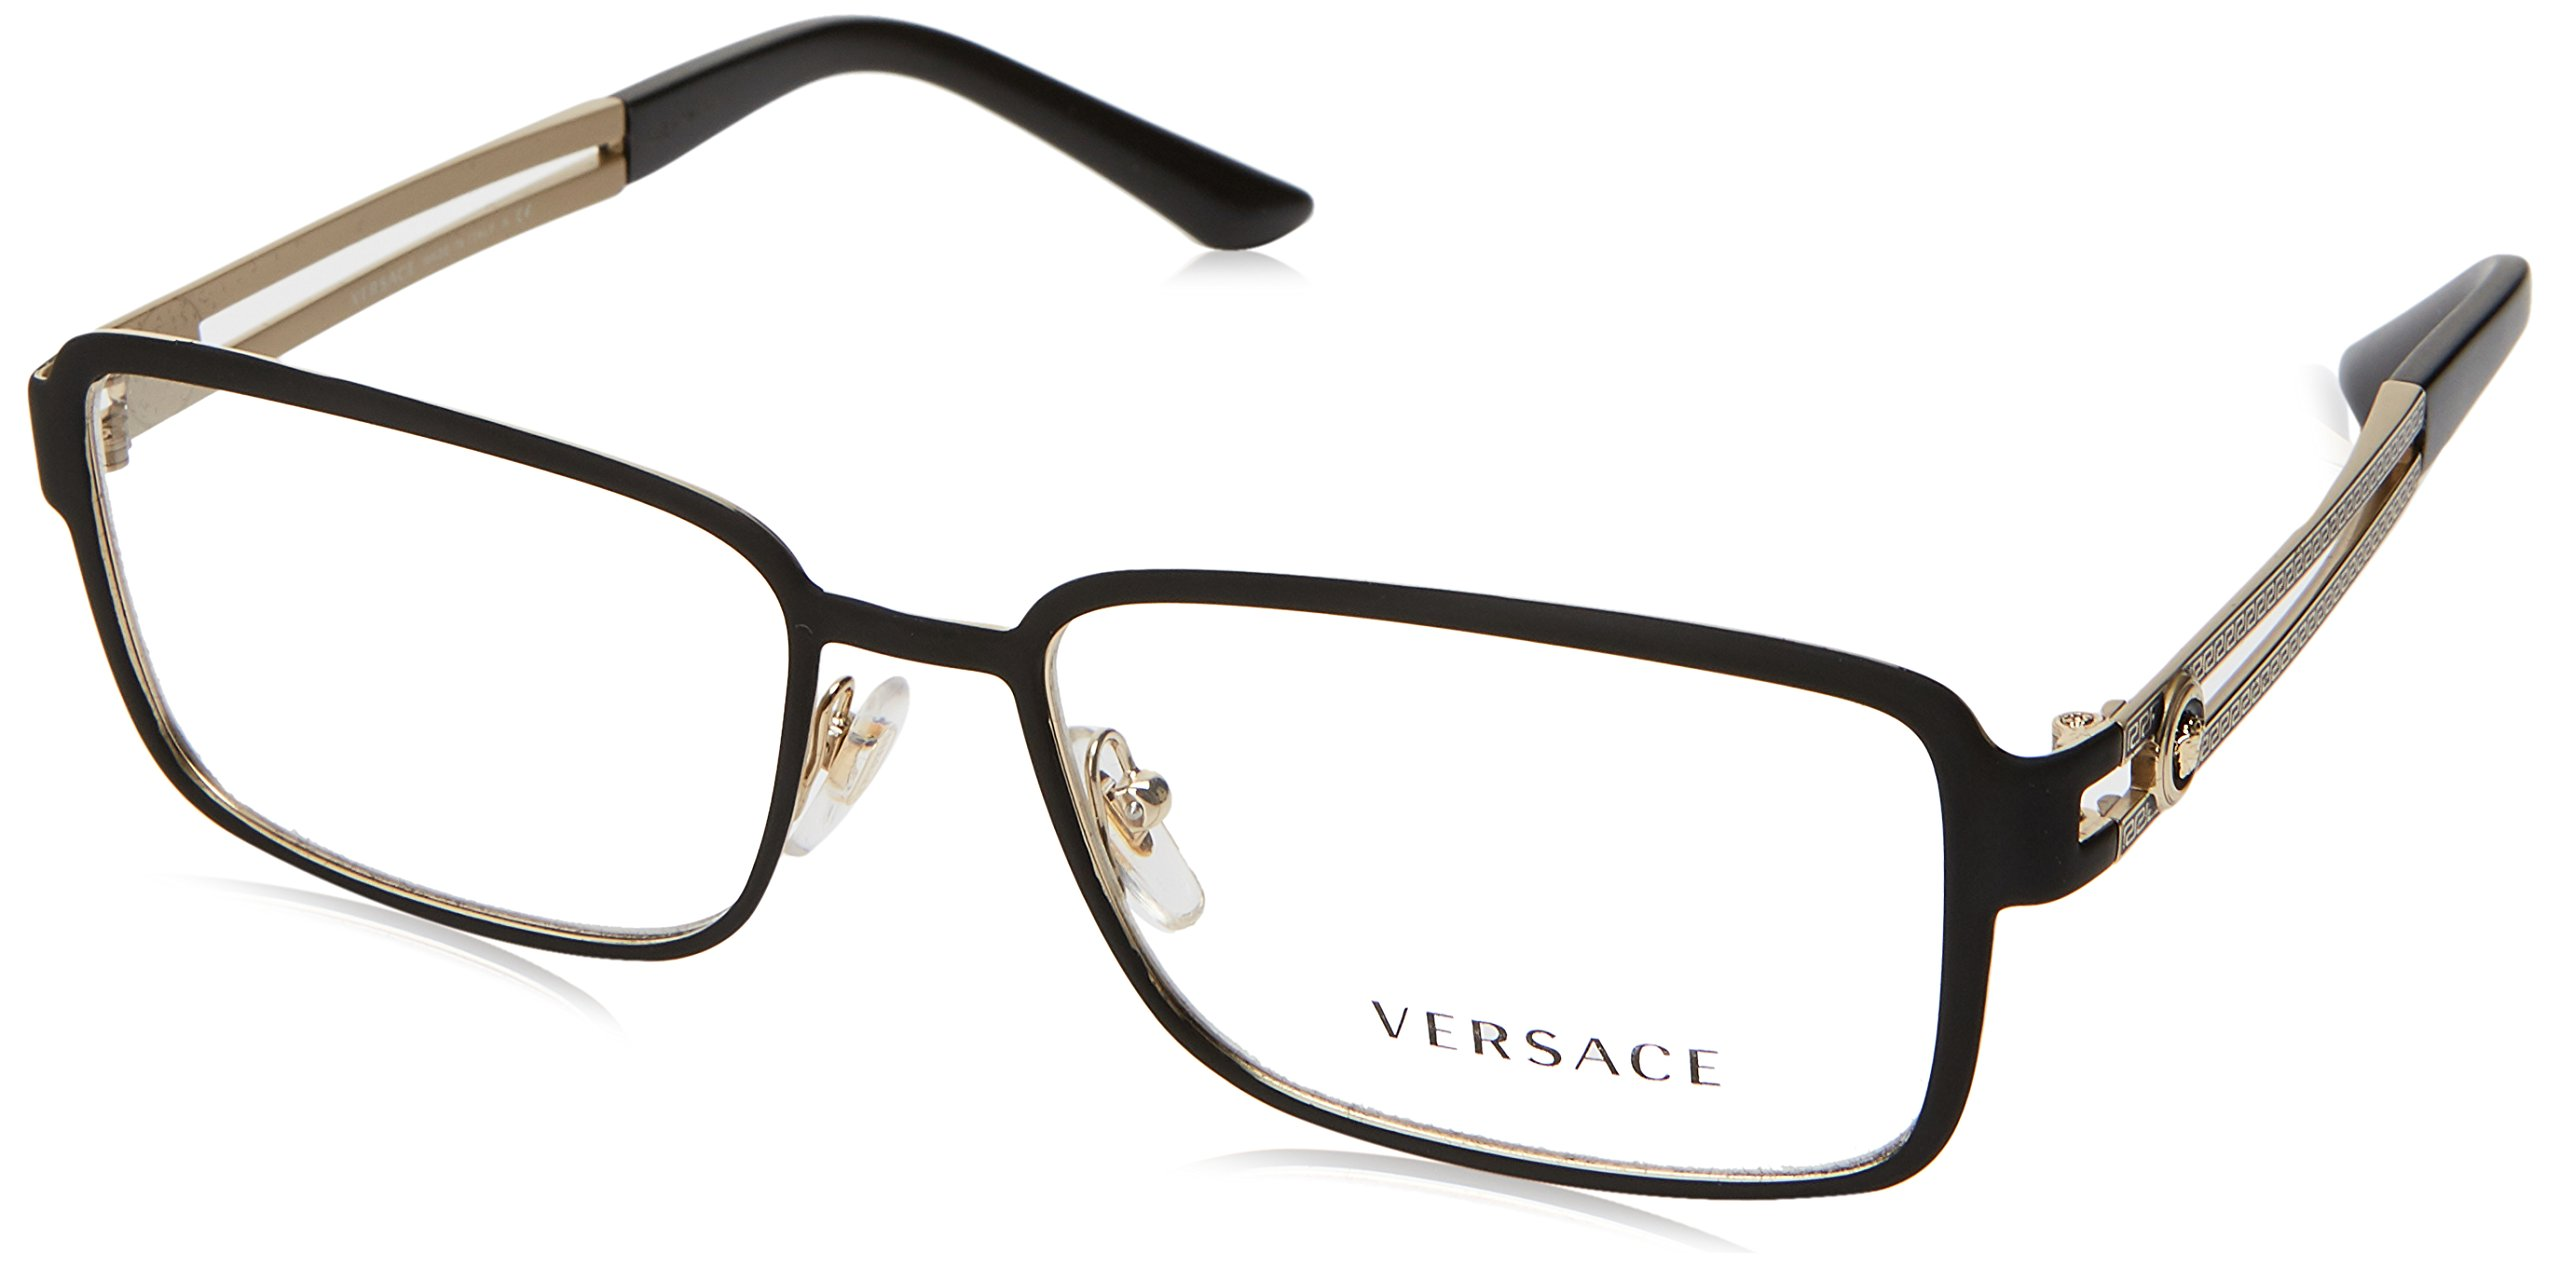 Versace VE1236 Eyeglass Frames 1377-55 - Matte Black/Pale Gold VE1236-1377-55 by Versace